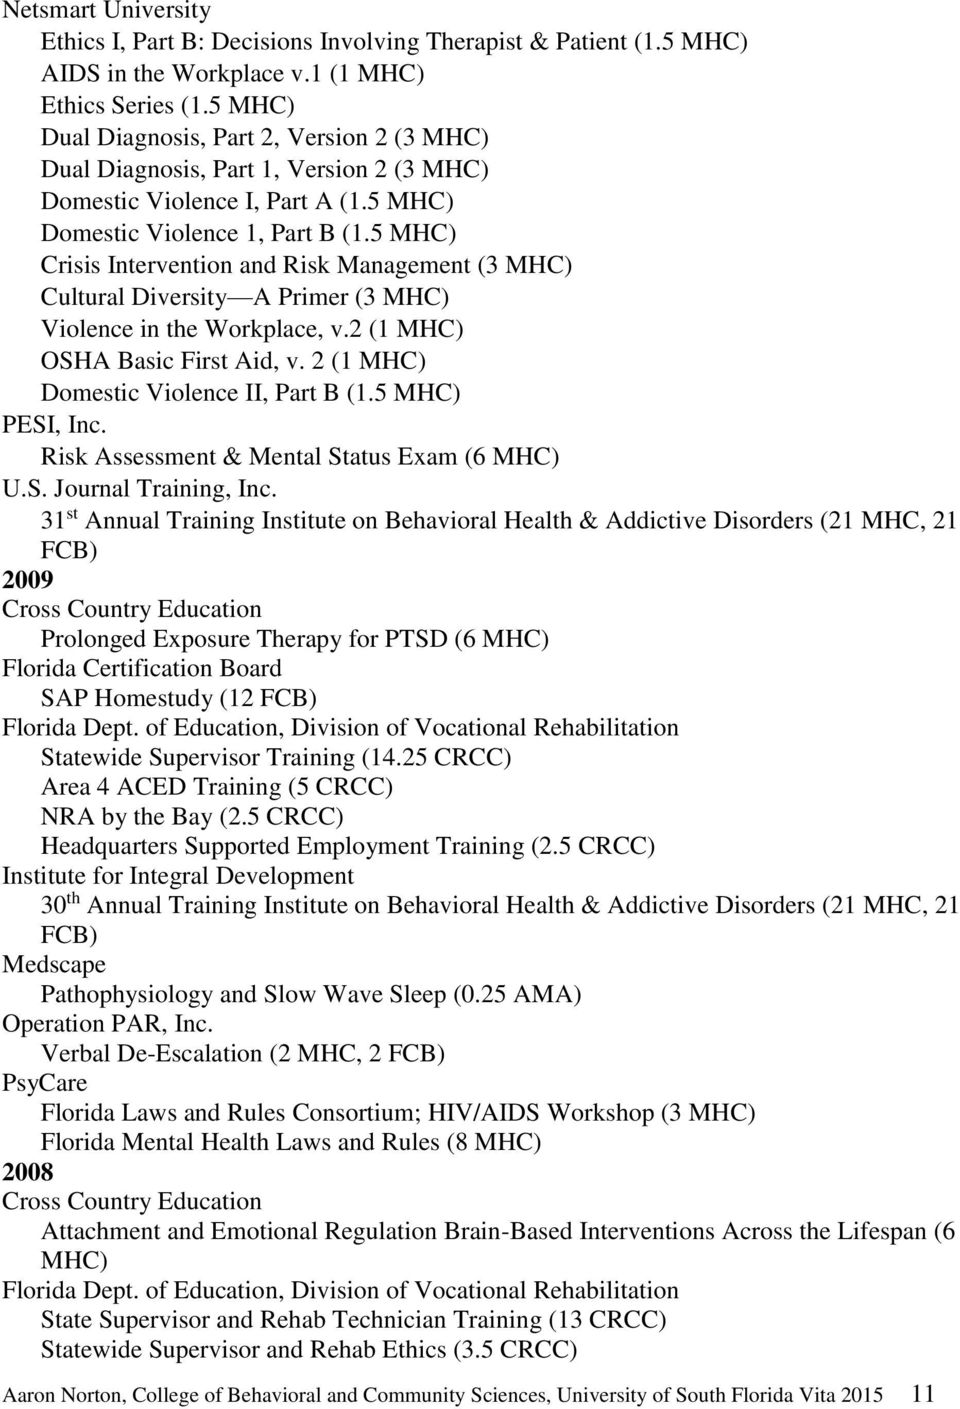 5 MHC) Crisis Intervention and Risk Management (3 MHC) Cultural Diversity A Primer (3 MHC) Violence in the Workplace, v.2 (1 MHC) OSHA Basic First Aid, v. 2 (1 MHC) Domestic Violence II, Part B (1.